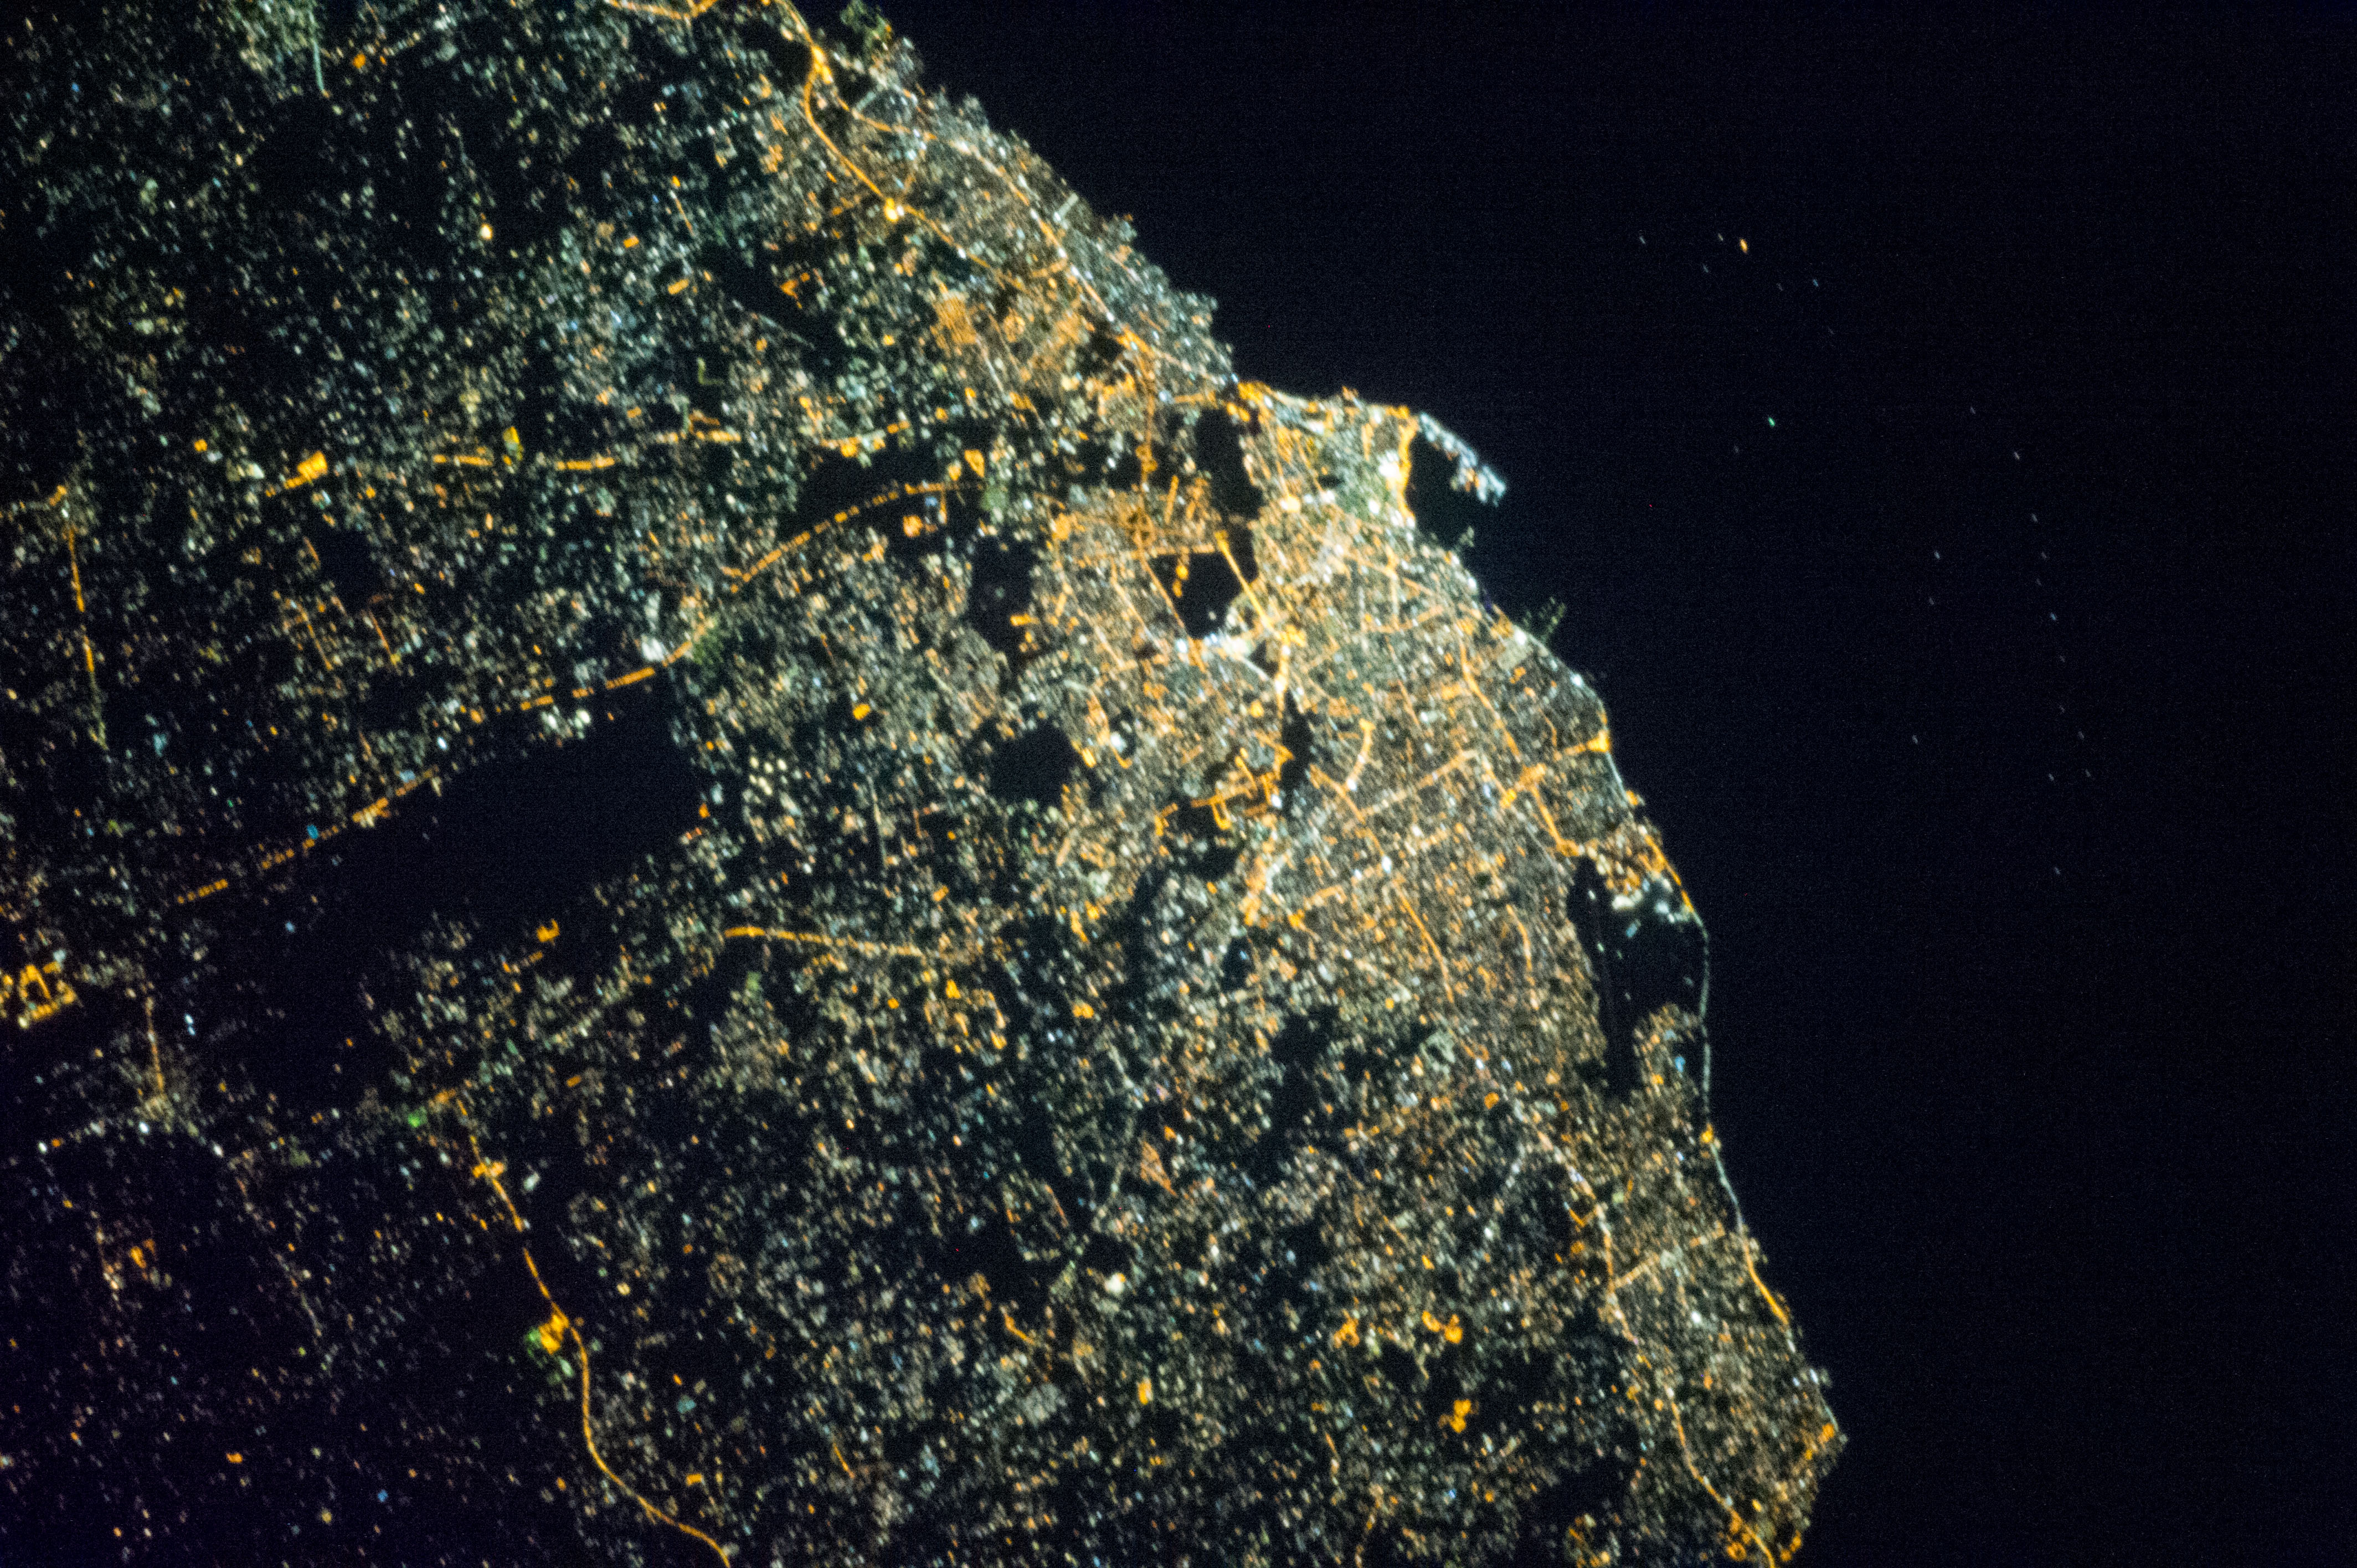 Tripoli, Libya from Expedition 35